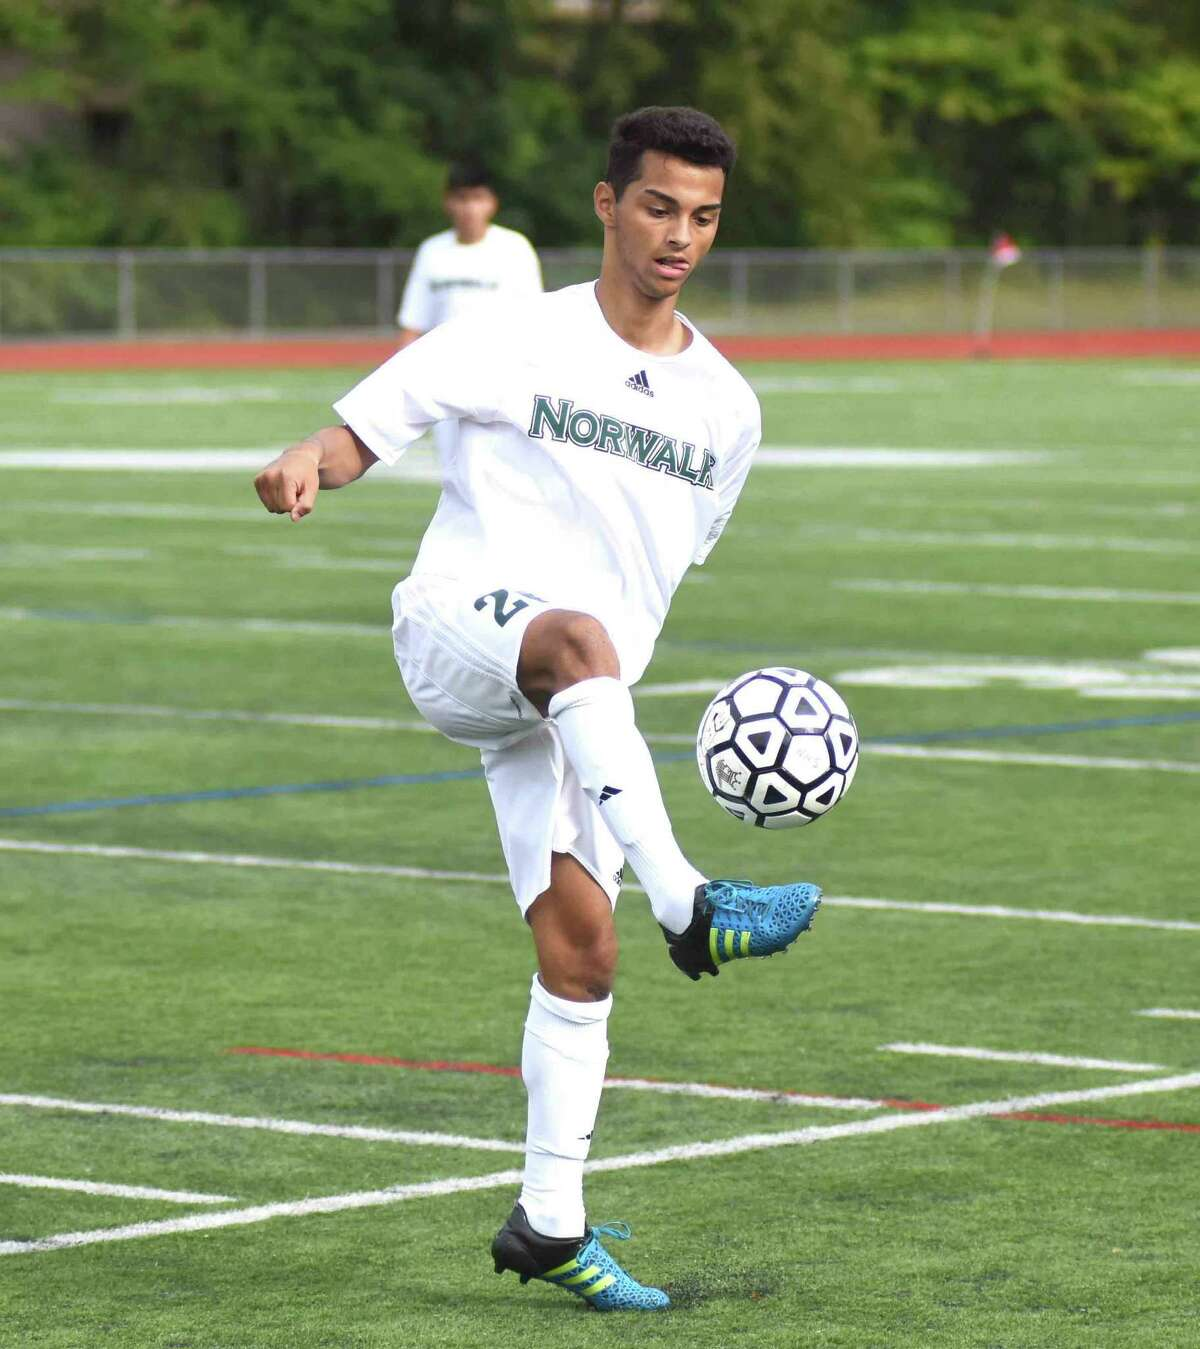 Norwalk senior Anthony Hernandez is one of four returning seniors that will lead a young Bears team into the 2016 season.